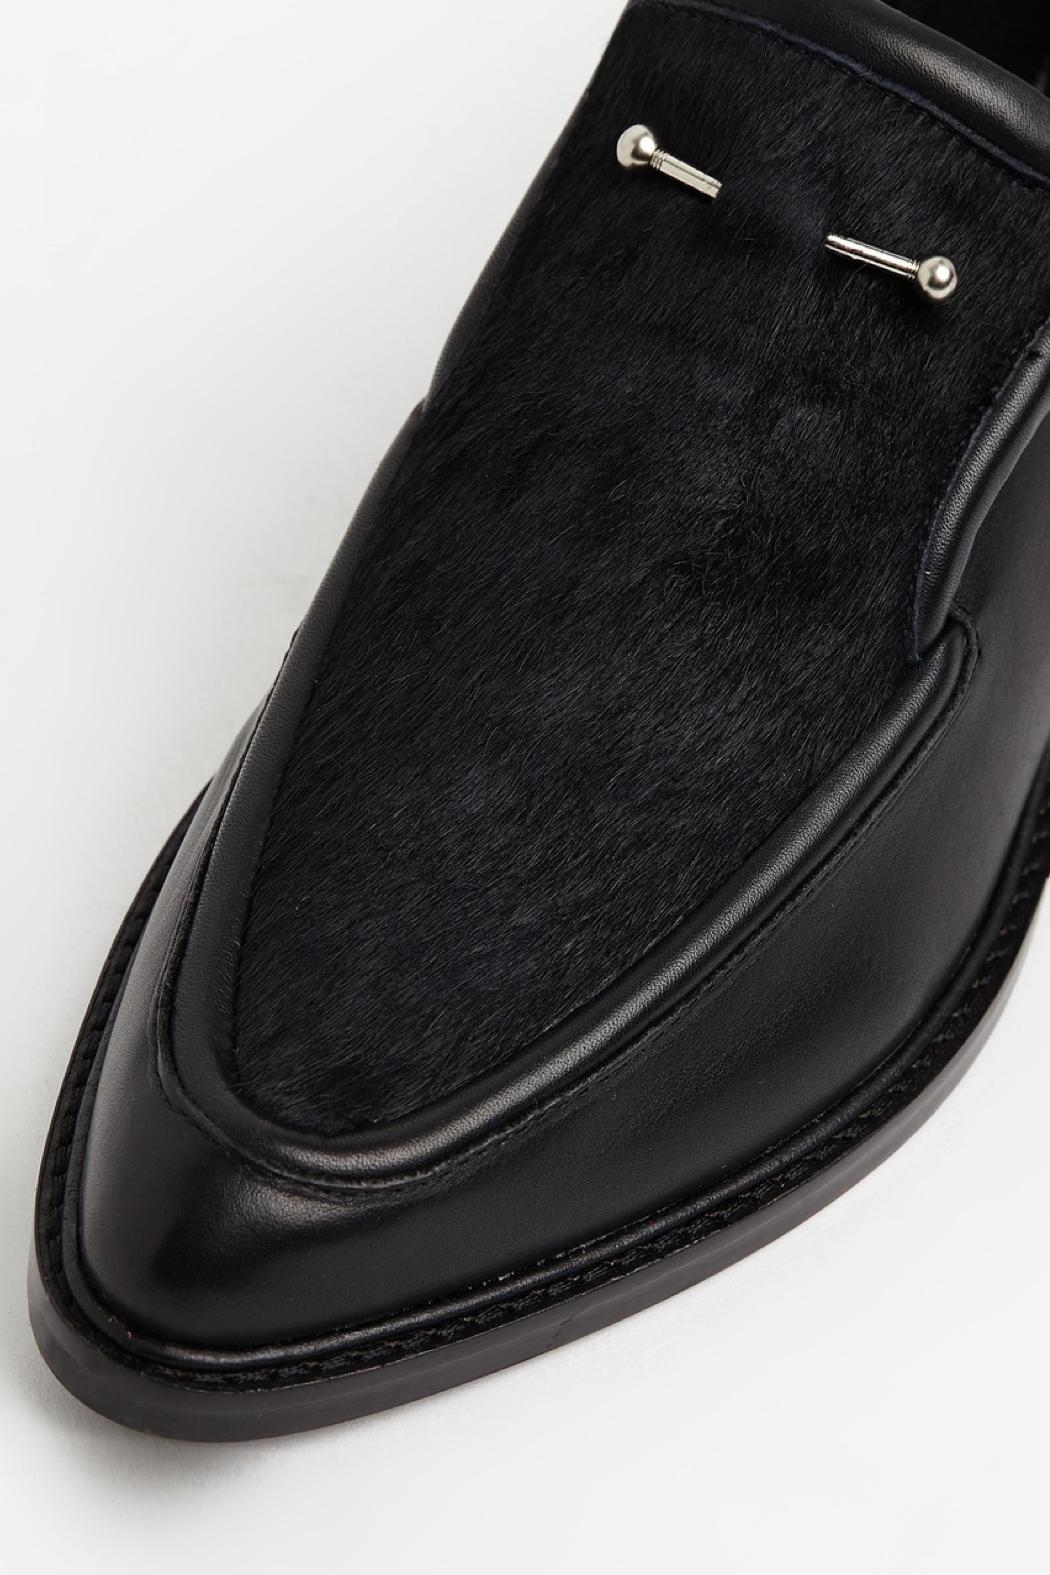 SOLSANA Pierced Leather Loafer - Side Cropped Image